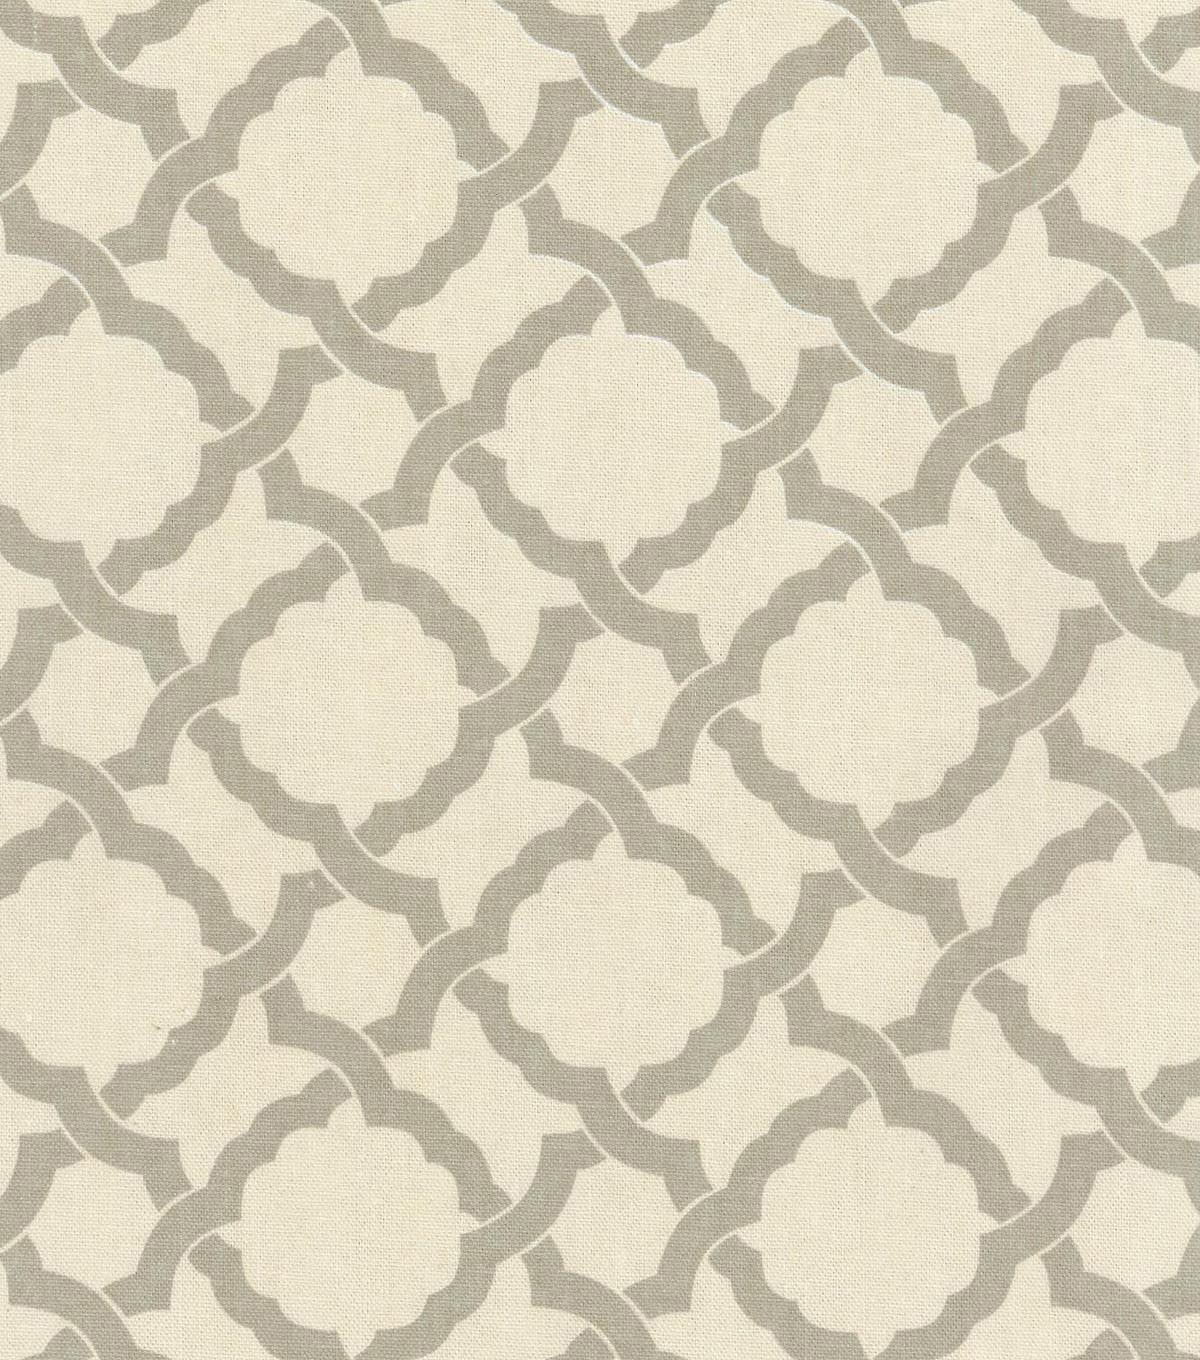 Waverly Upholstery Fabric-Kent Crossing Clay